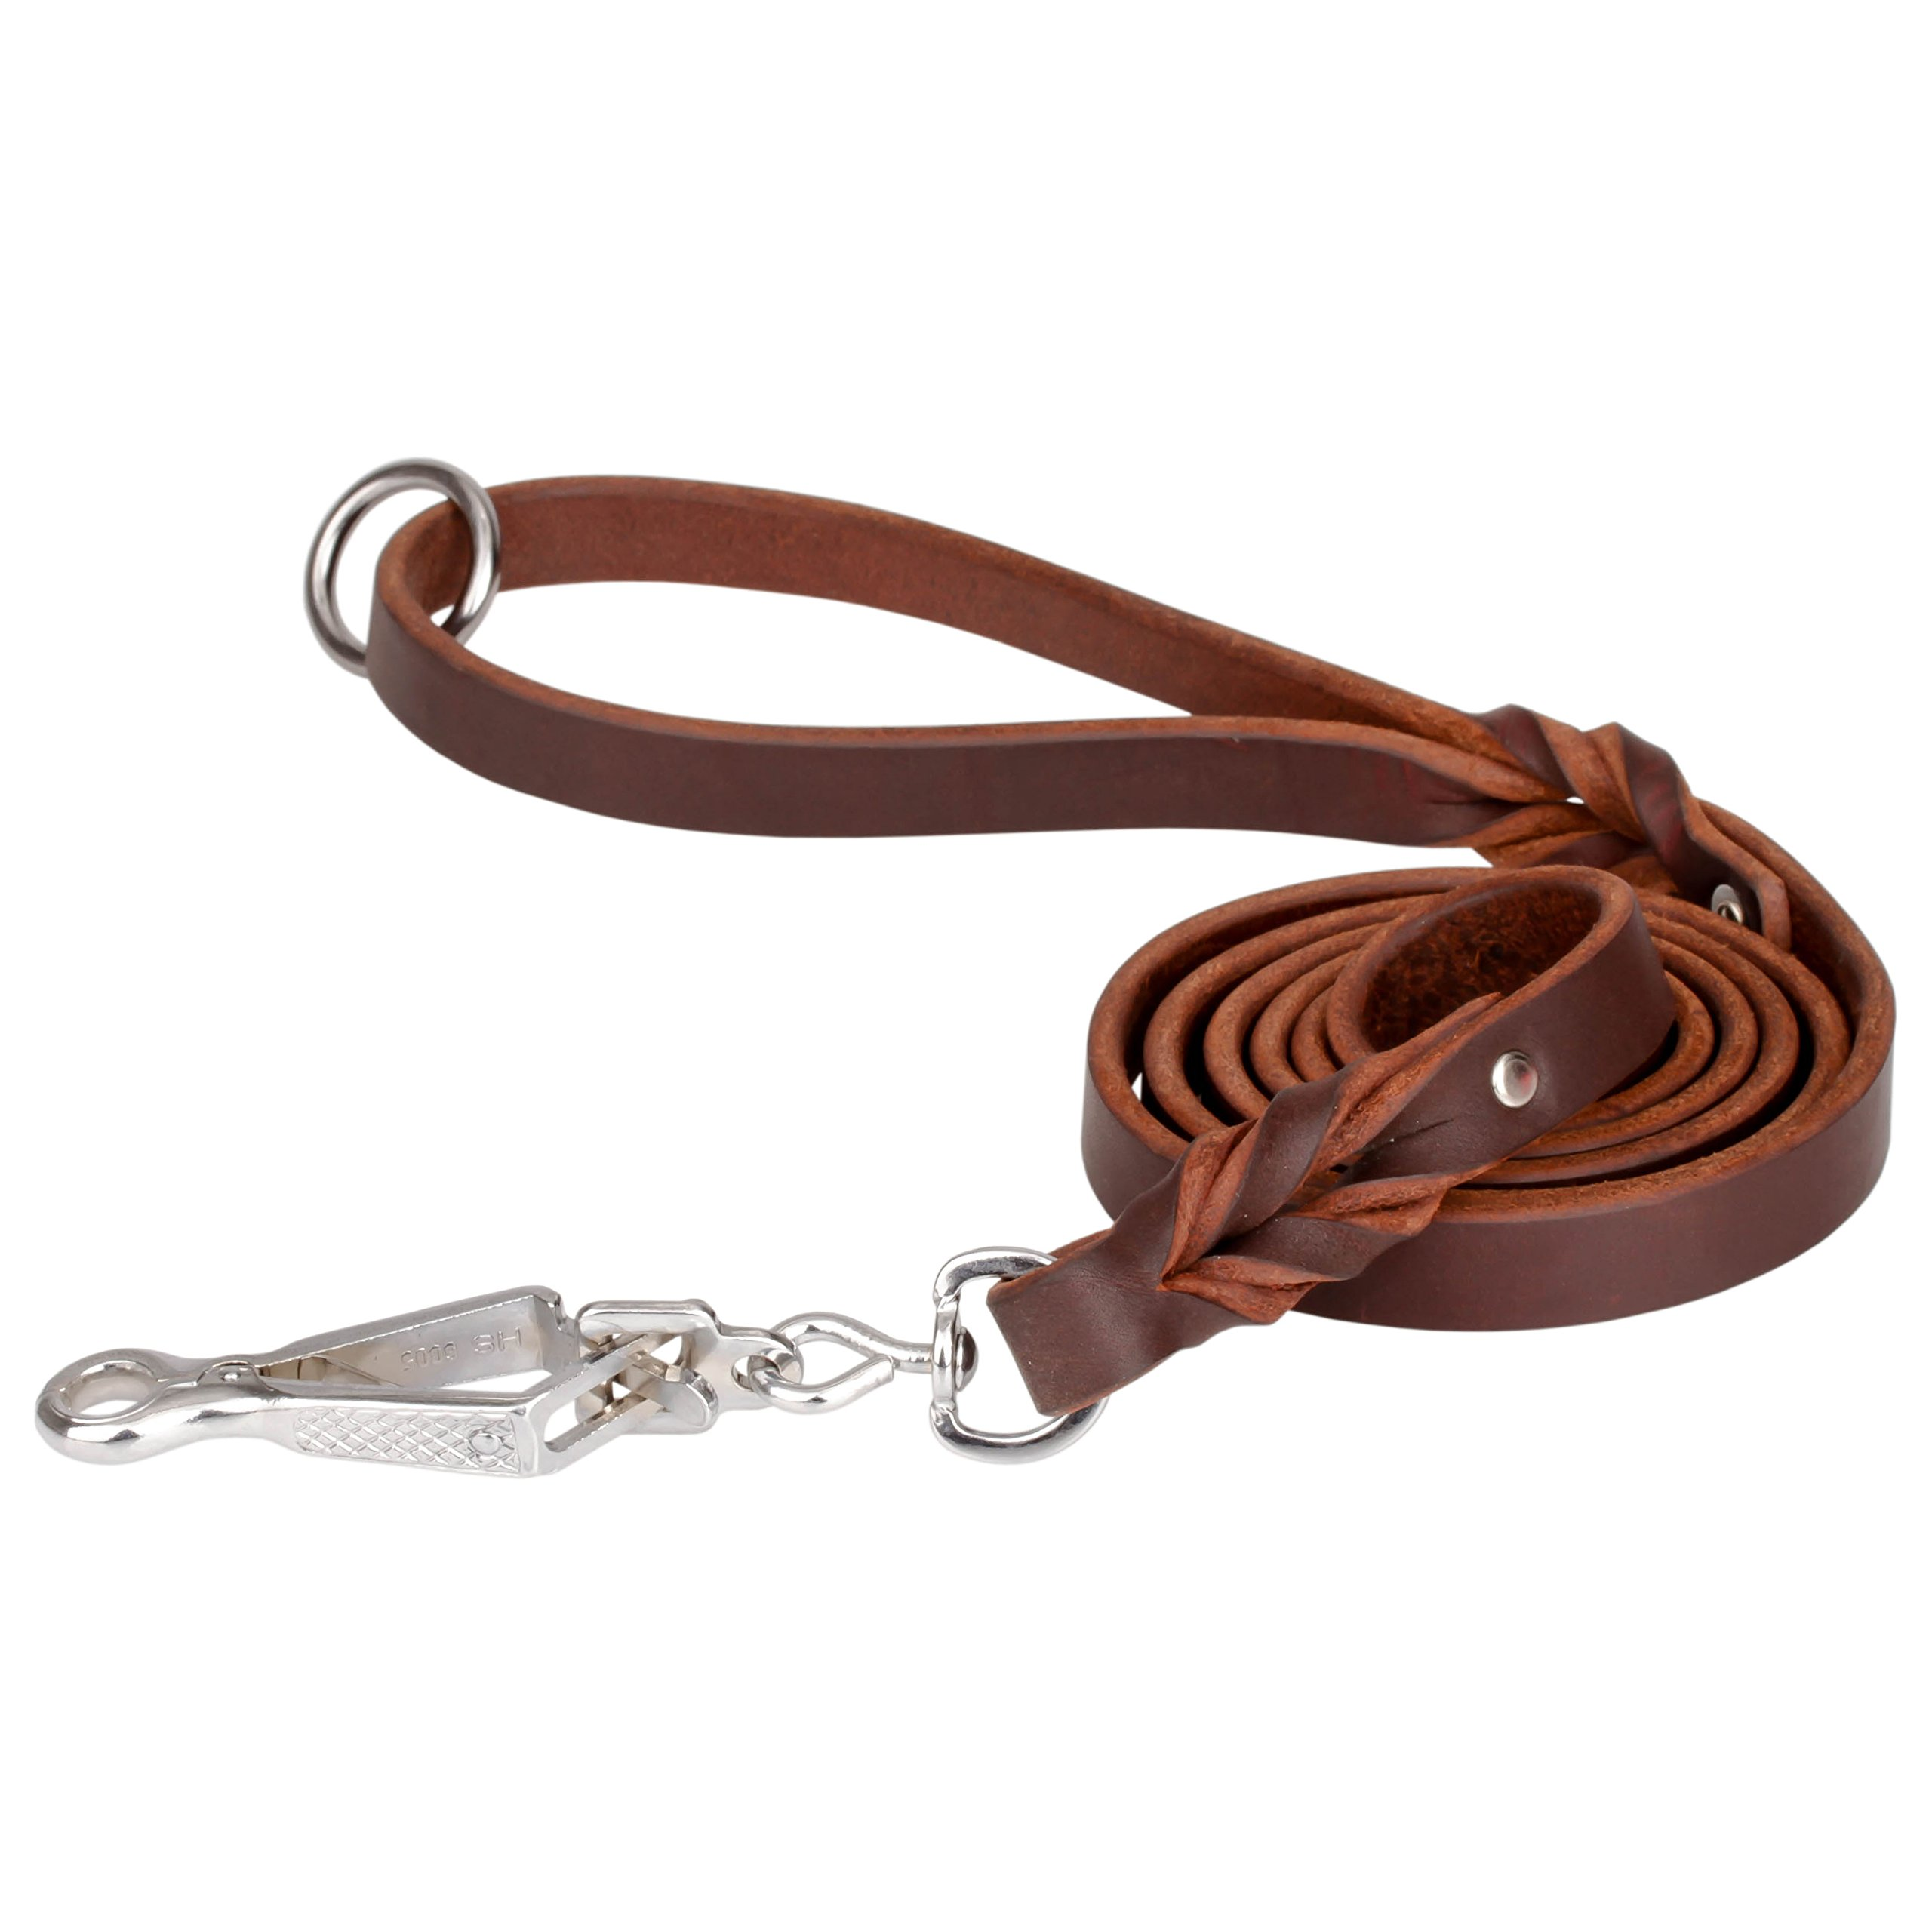 Herm Sprenger Handcrafted Leather Tervuren Leash with Quick Release Snap Hook 6 ft (180 cm) for Walking and Training